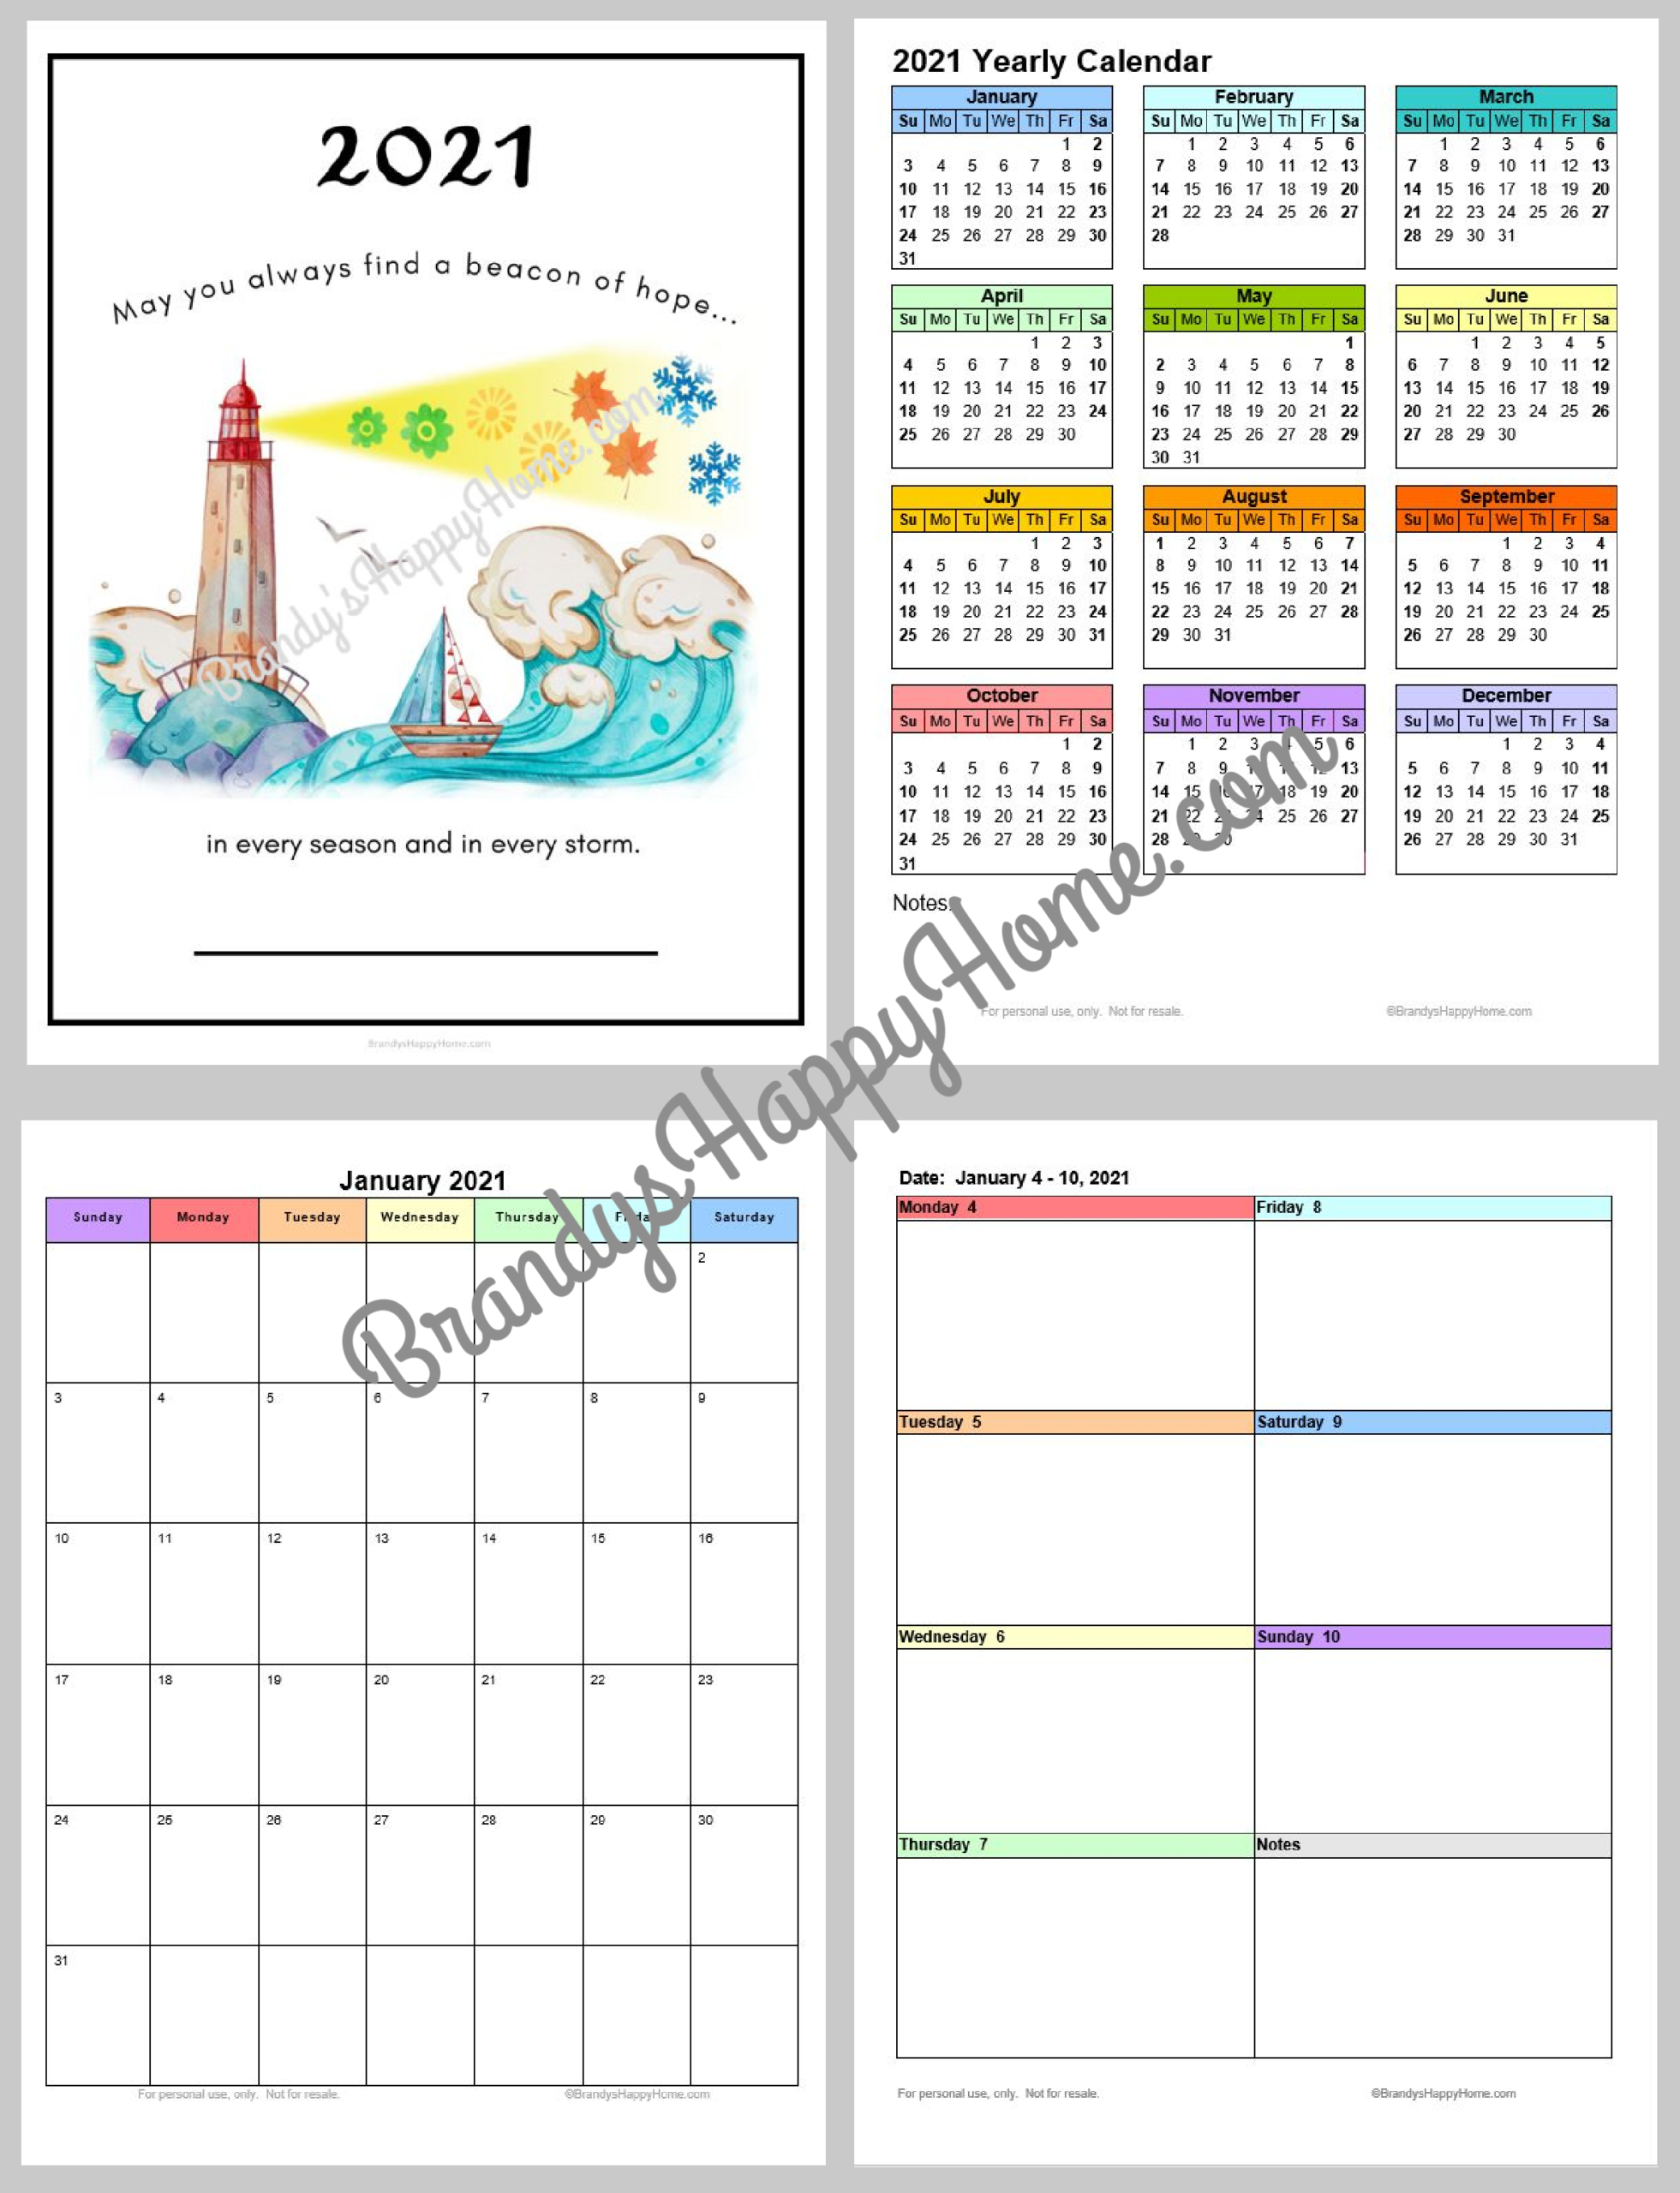 Free 2021 Calendar Planner Printables pertaining to 2021-2021 Two Year Planner: 2 Year